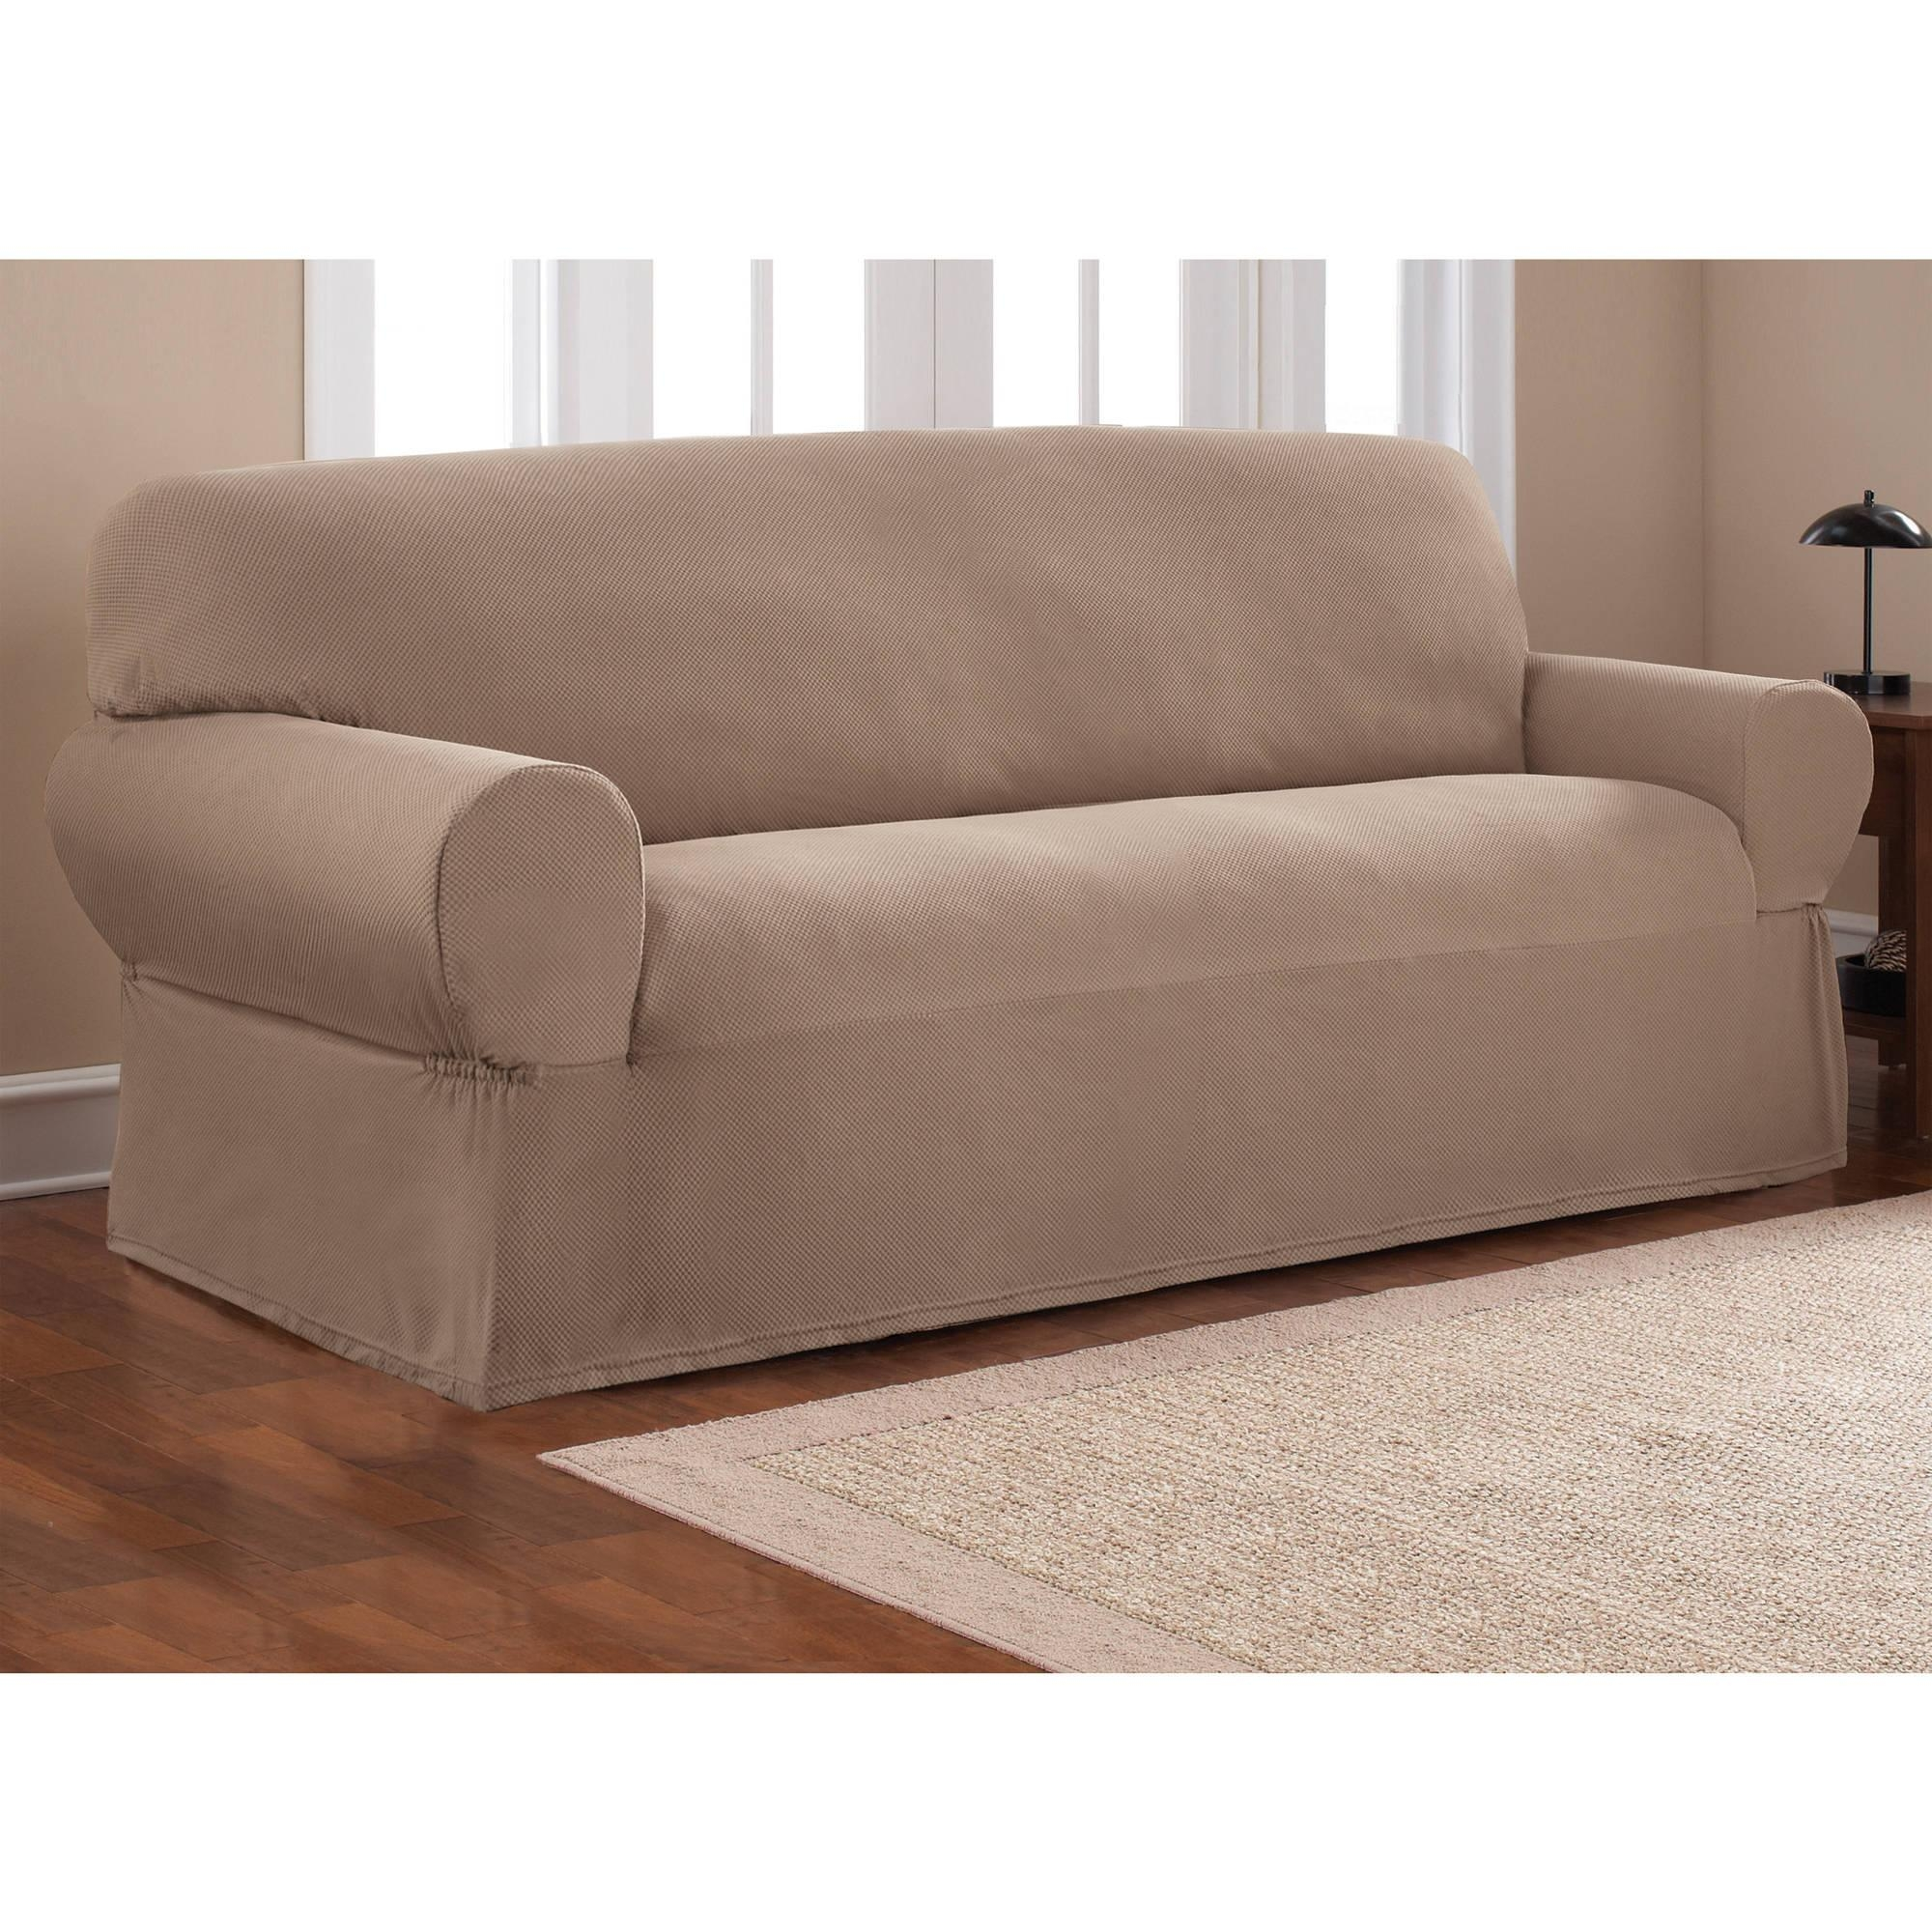 Mainstays 1 Piece Stretch Fabric Sofa Slipcover – Walmart With Slipcovers Sofas (Image 13 of 20)